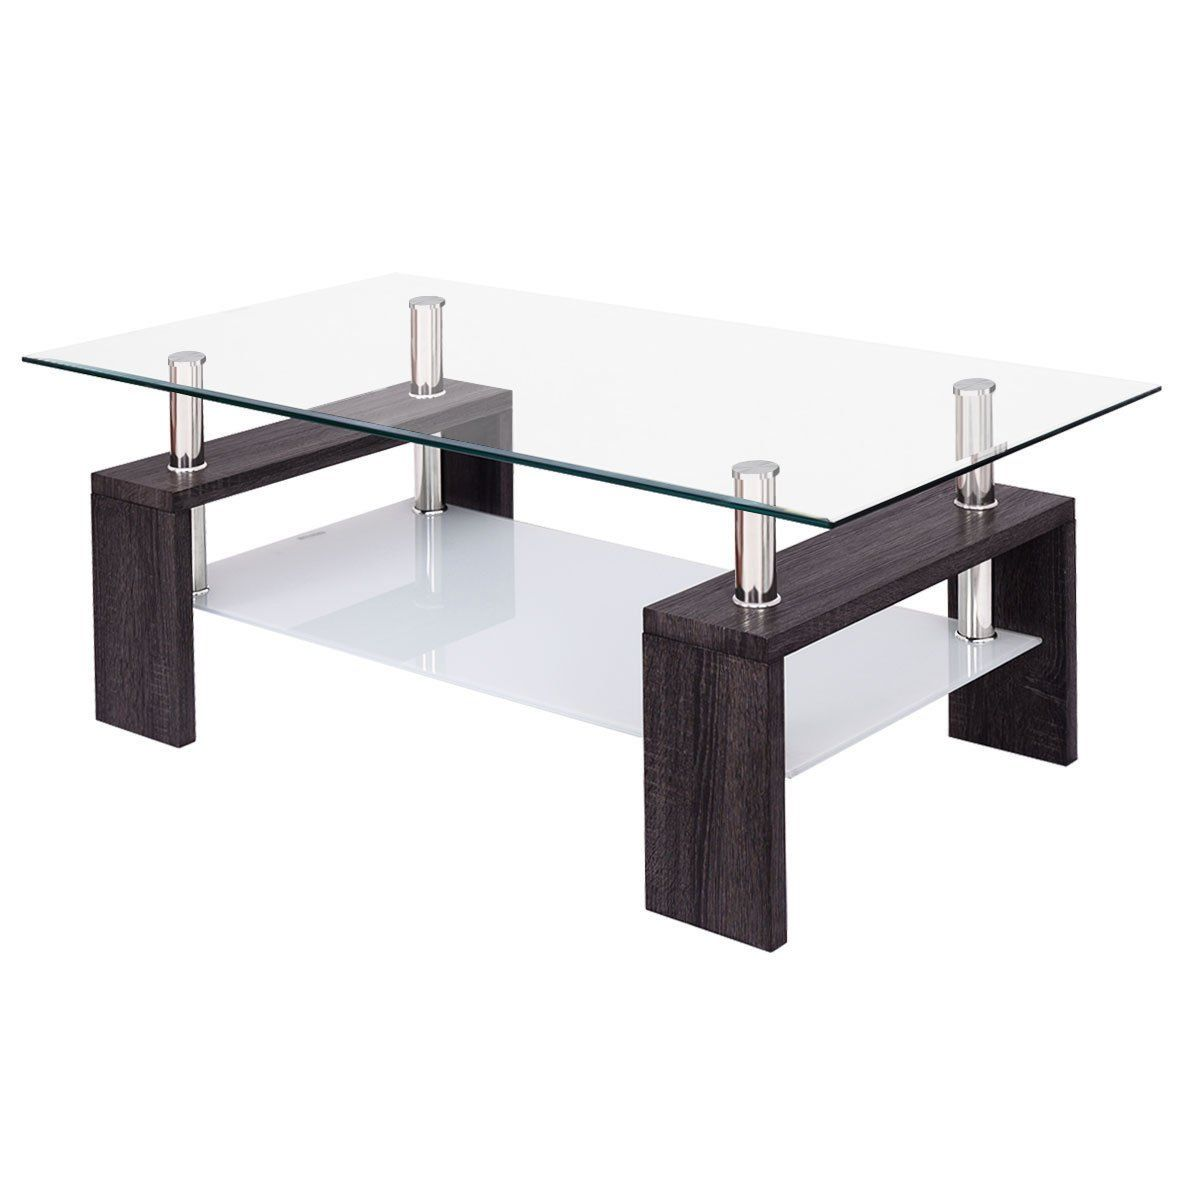 Contemporary Coffee Table W Shelf Rectangular Wood Living Room Furniture Modern Clear Glass T Coffee Table Contemporary Coffee Table Wood Furniture Living Room [ 1200 x 1200 Pixel ]